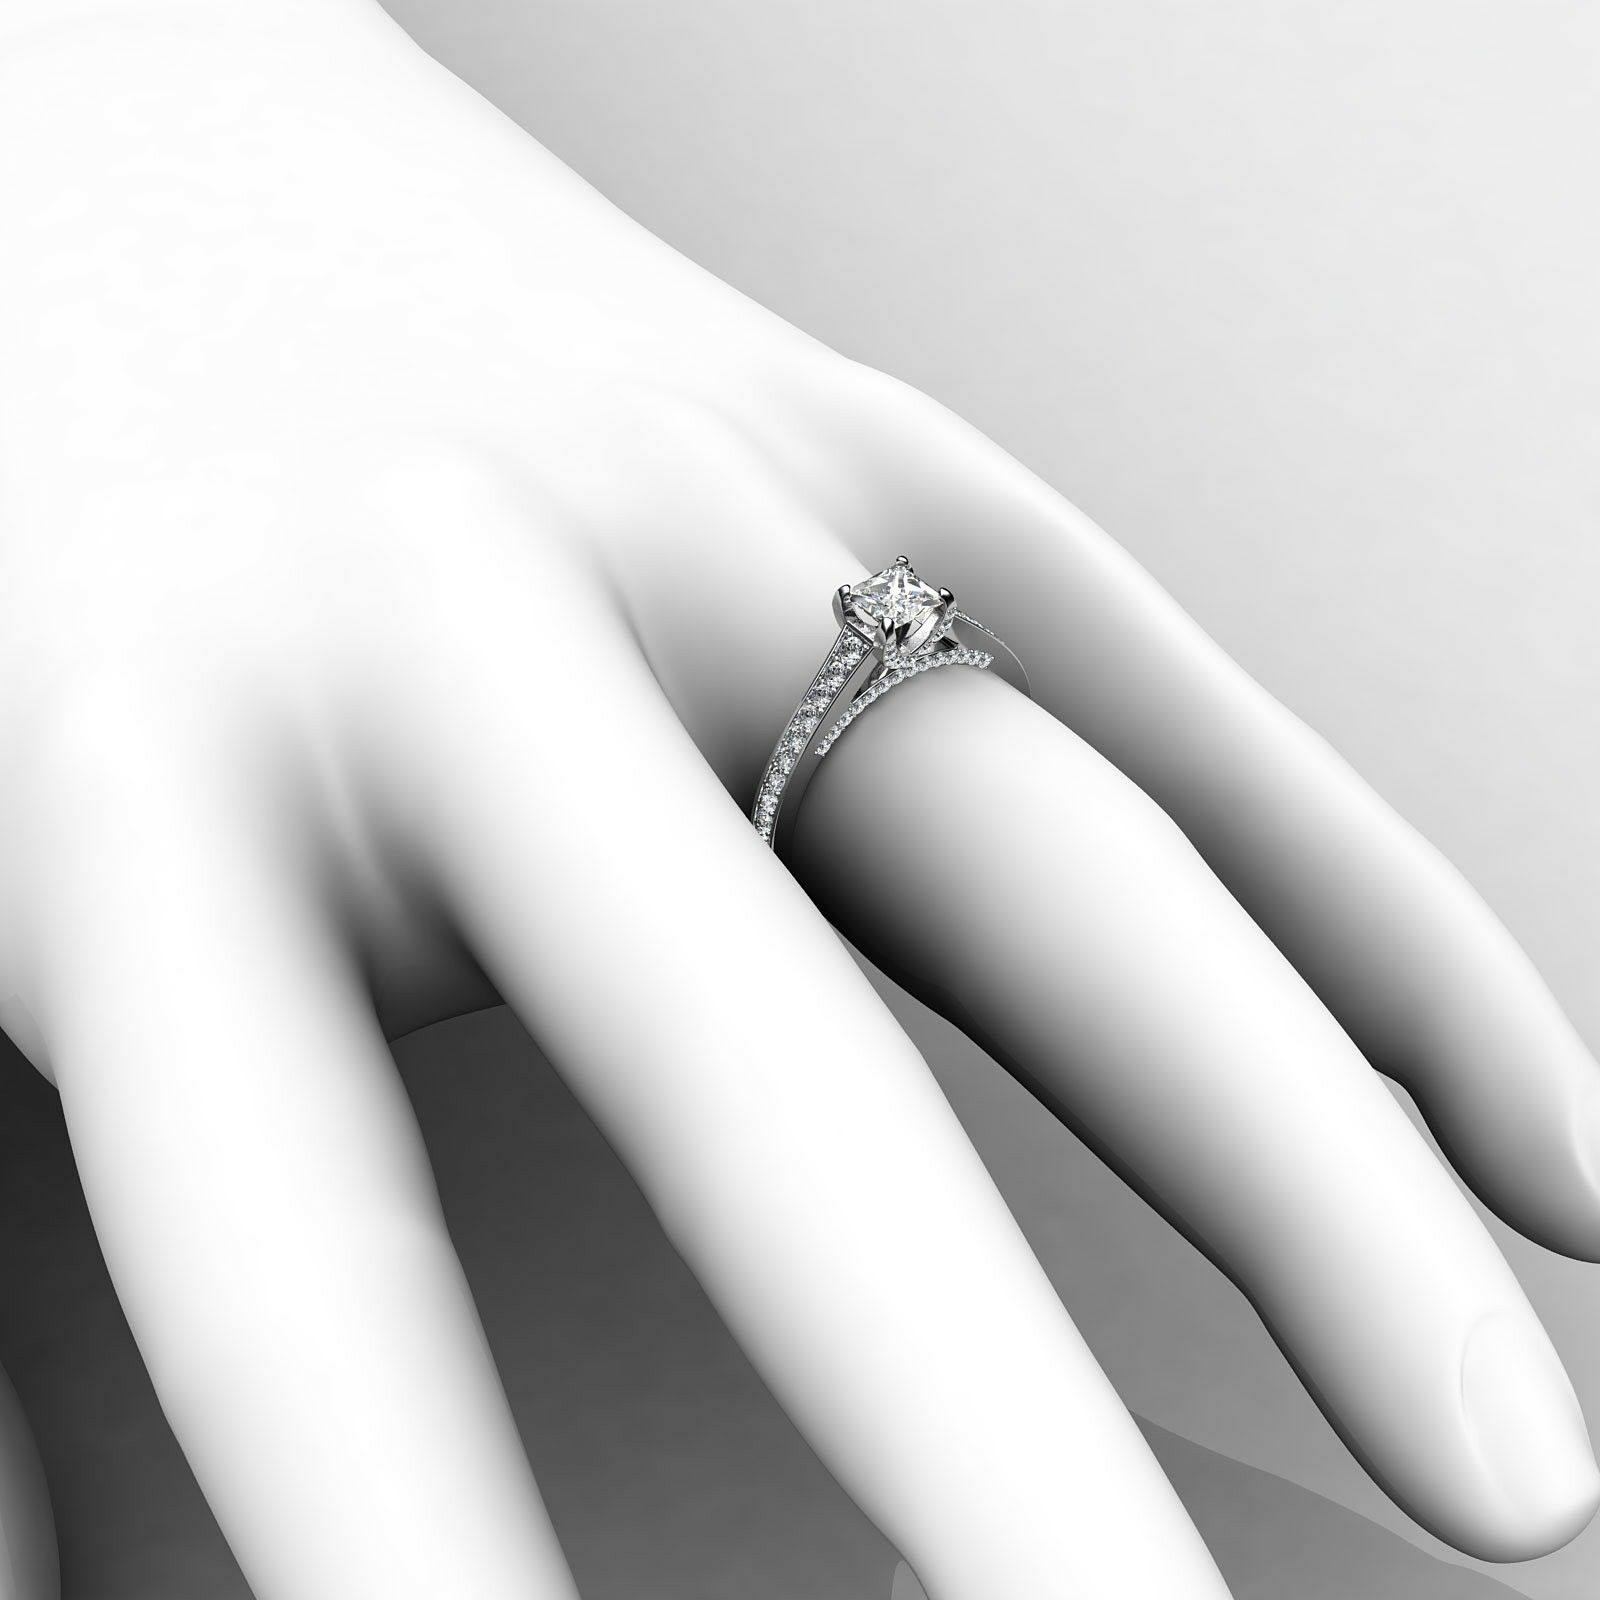 1.46ctw Tapered Pave Princess Diamond Engagement Ring GIA G-VS2 White Gold Rings 4